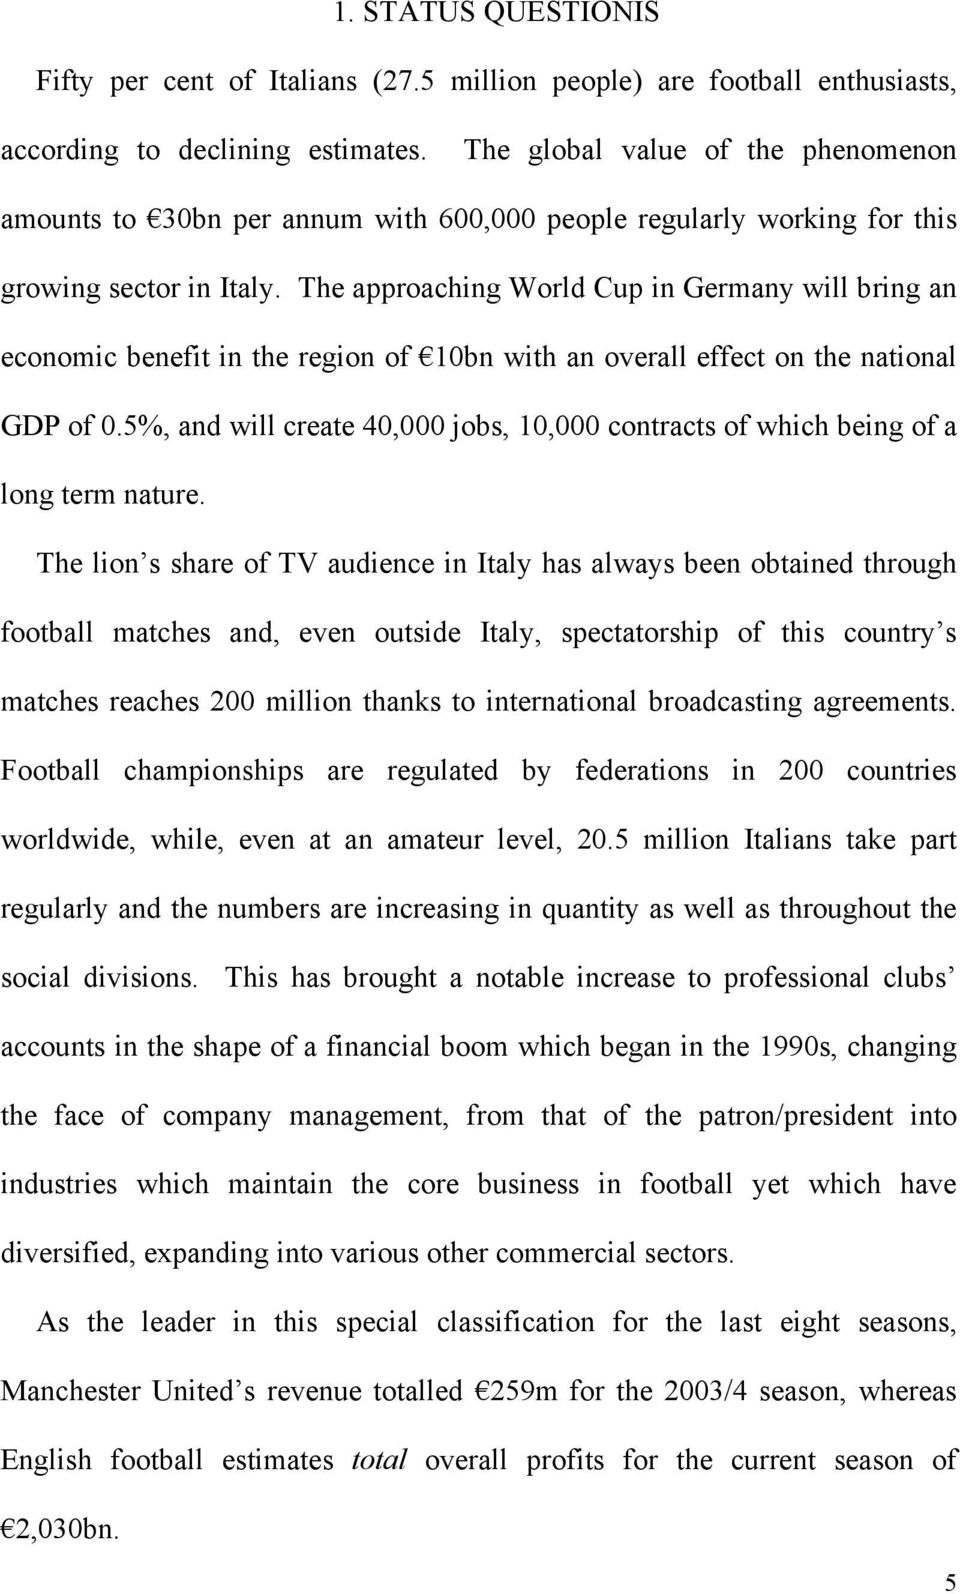 The approaching World Cup in Germany will bring an economic benefit in the region of 10bn with an overall effect on the national GDP of 0.